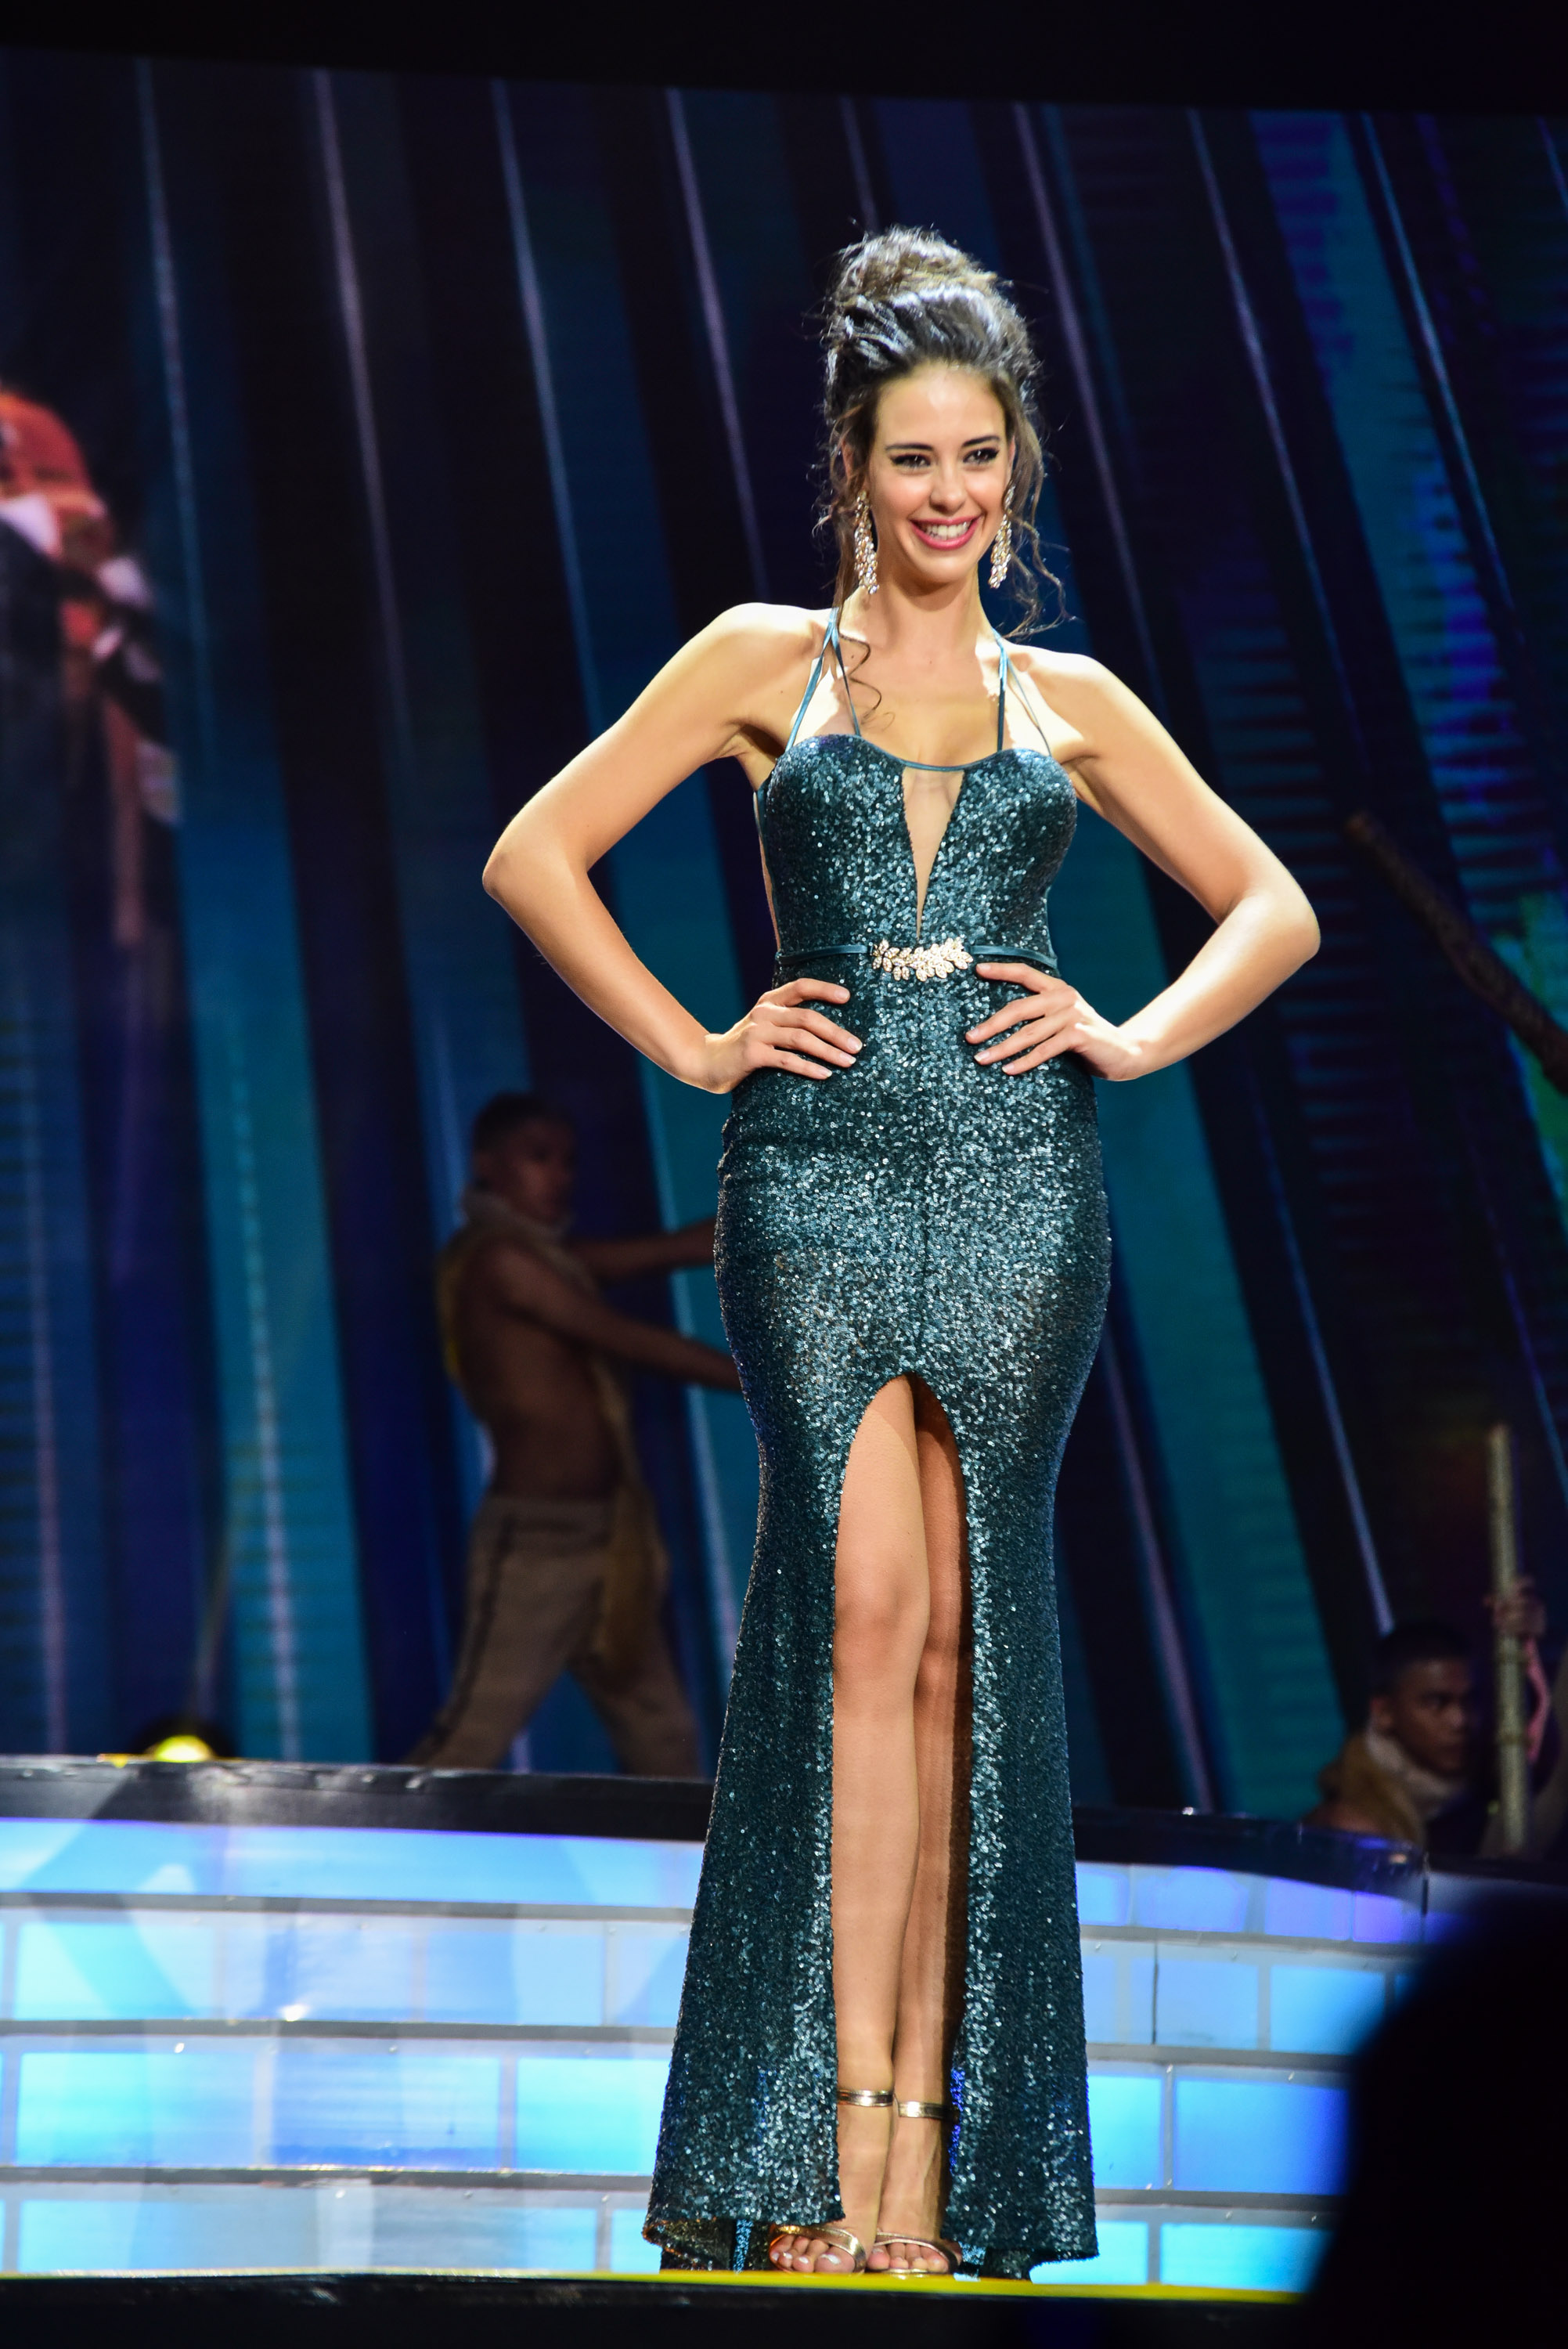 Watch Miss Earth 2016 Evening Gown Competition